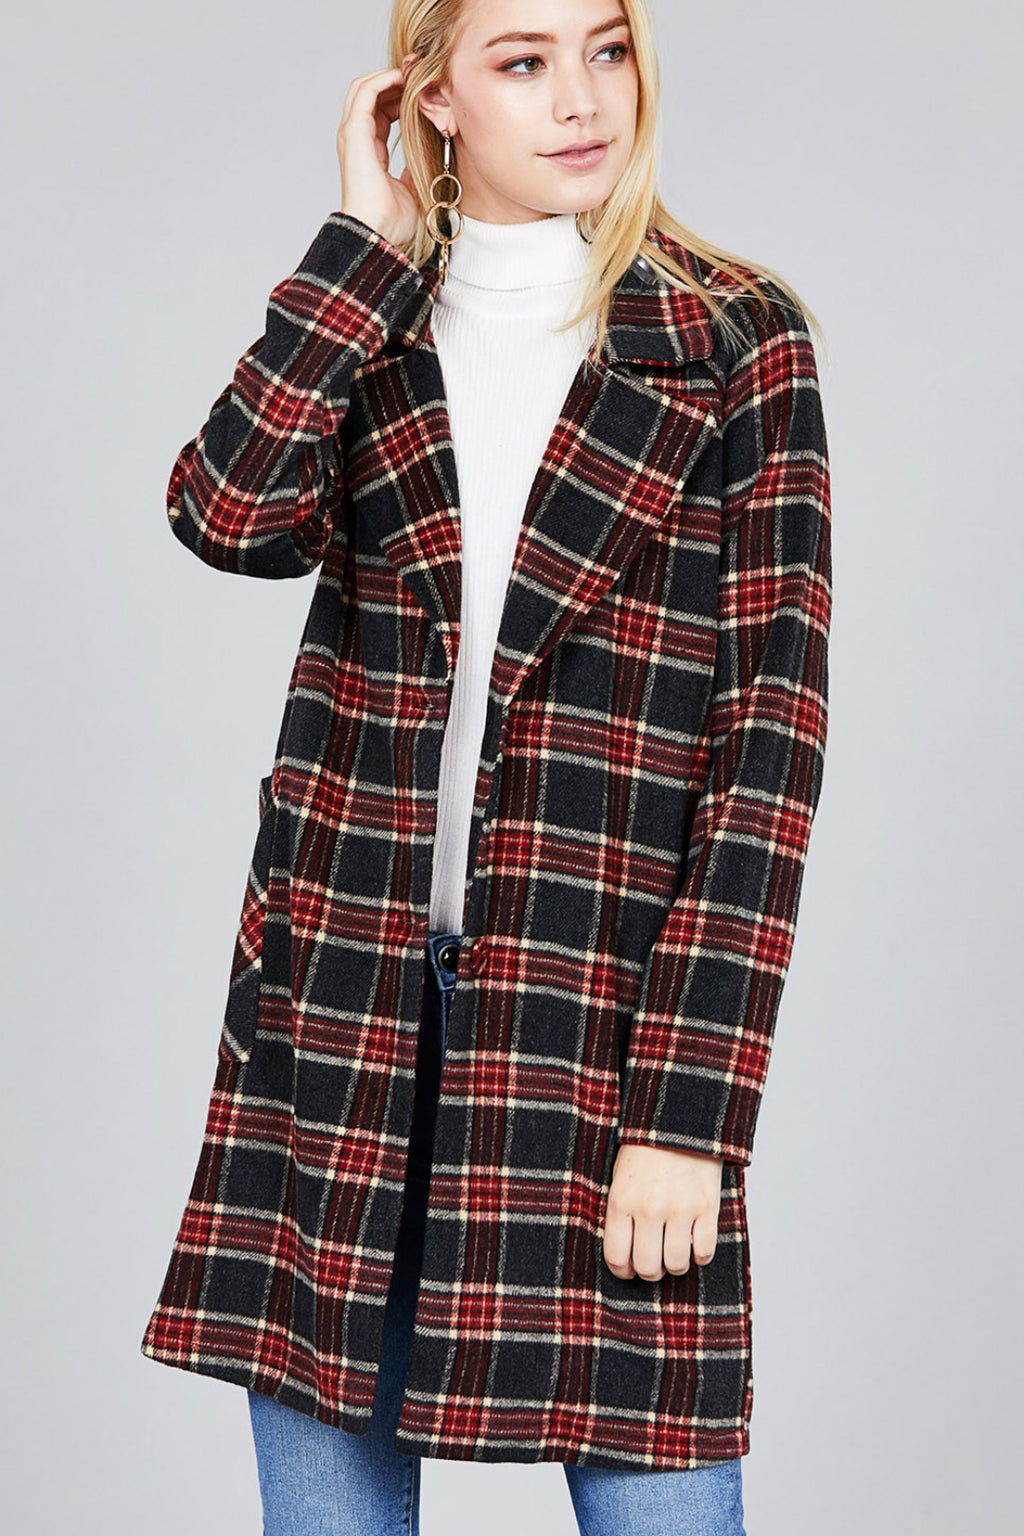 Charleston Coat-2 LEFT!